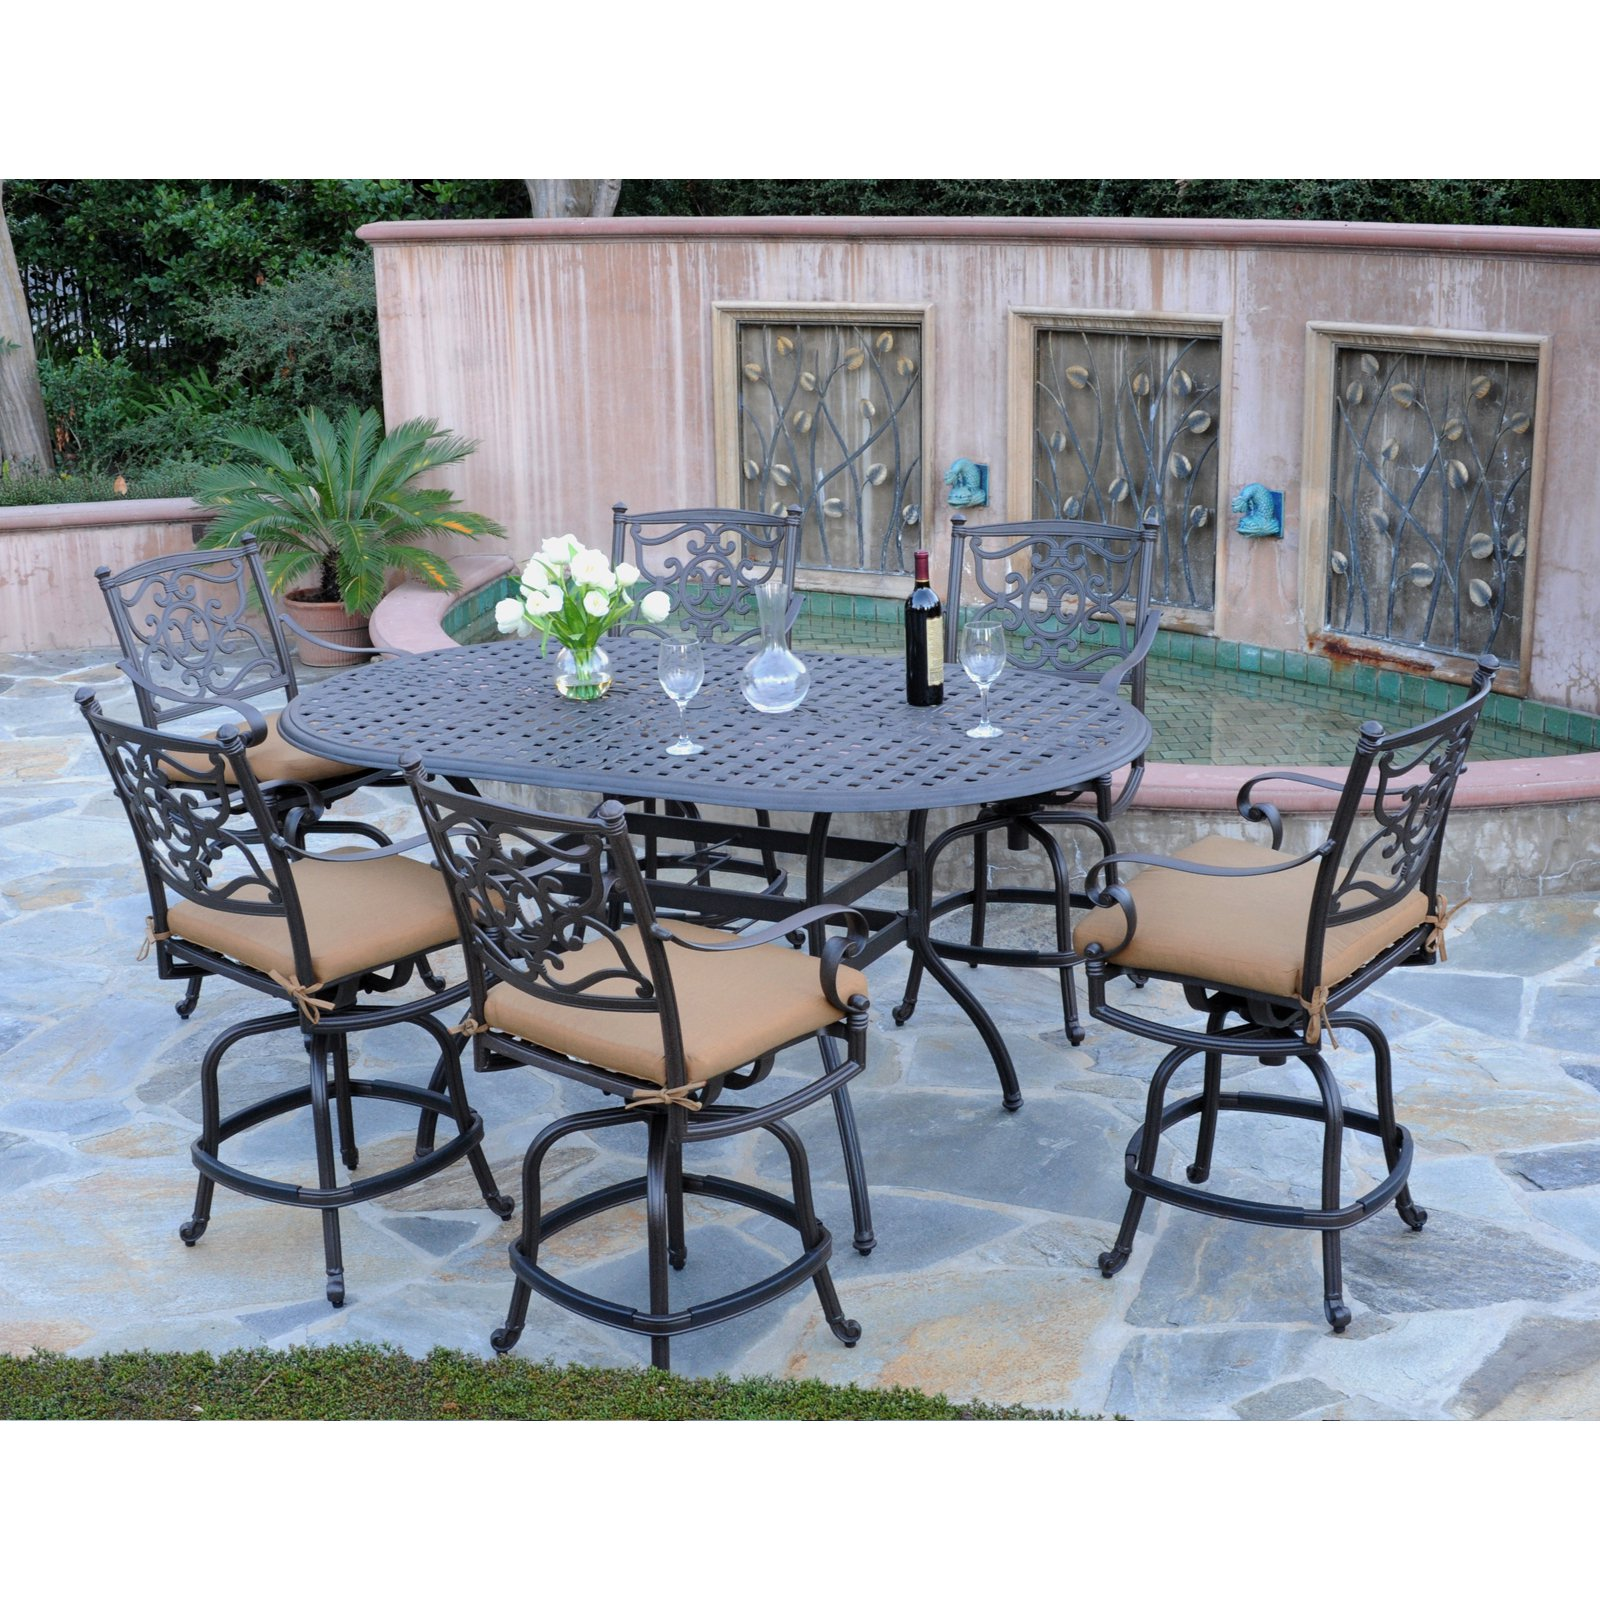 Counter Height Patio Dining Set Seats 6